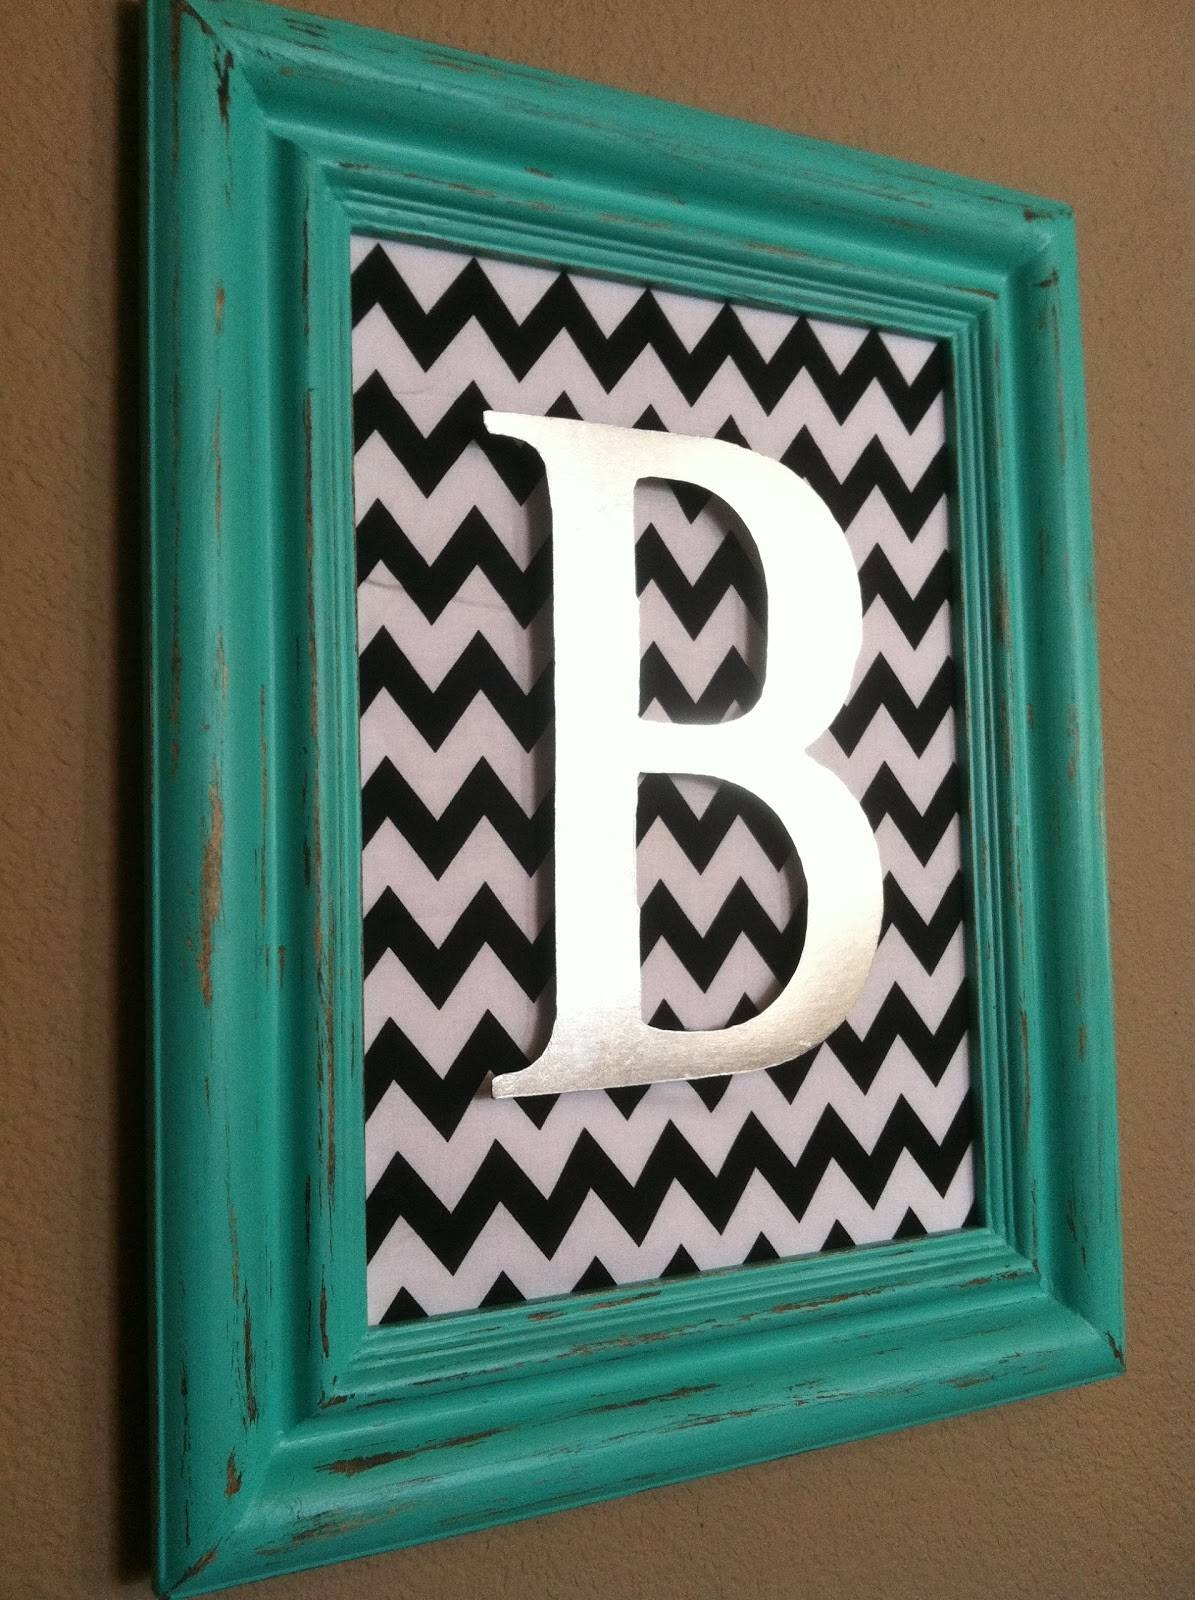 The Baeza Blog Aqua Distressed Monogram Frame Vaseline Method With Current Framed Monogram. Previous Photo Framed Monogram Wall Art & Explore Photos of Framed Monogram Wall Art (Showing 9 of 20 Photos)